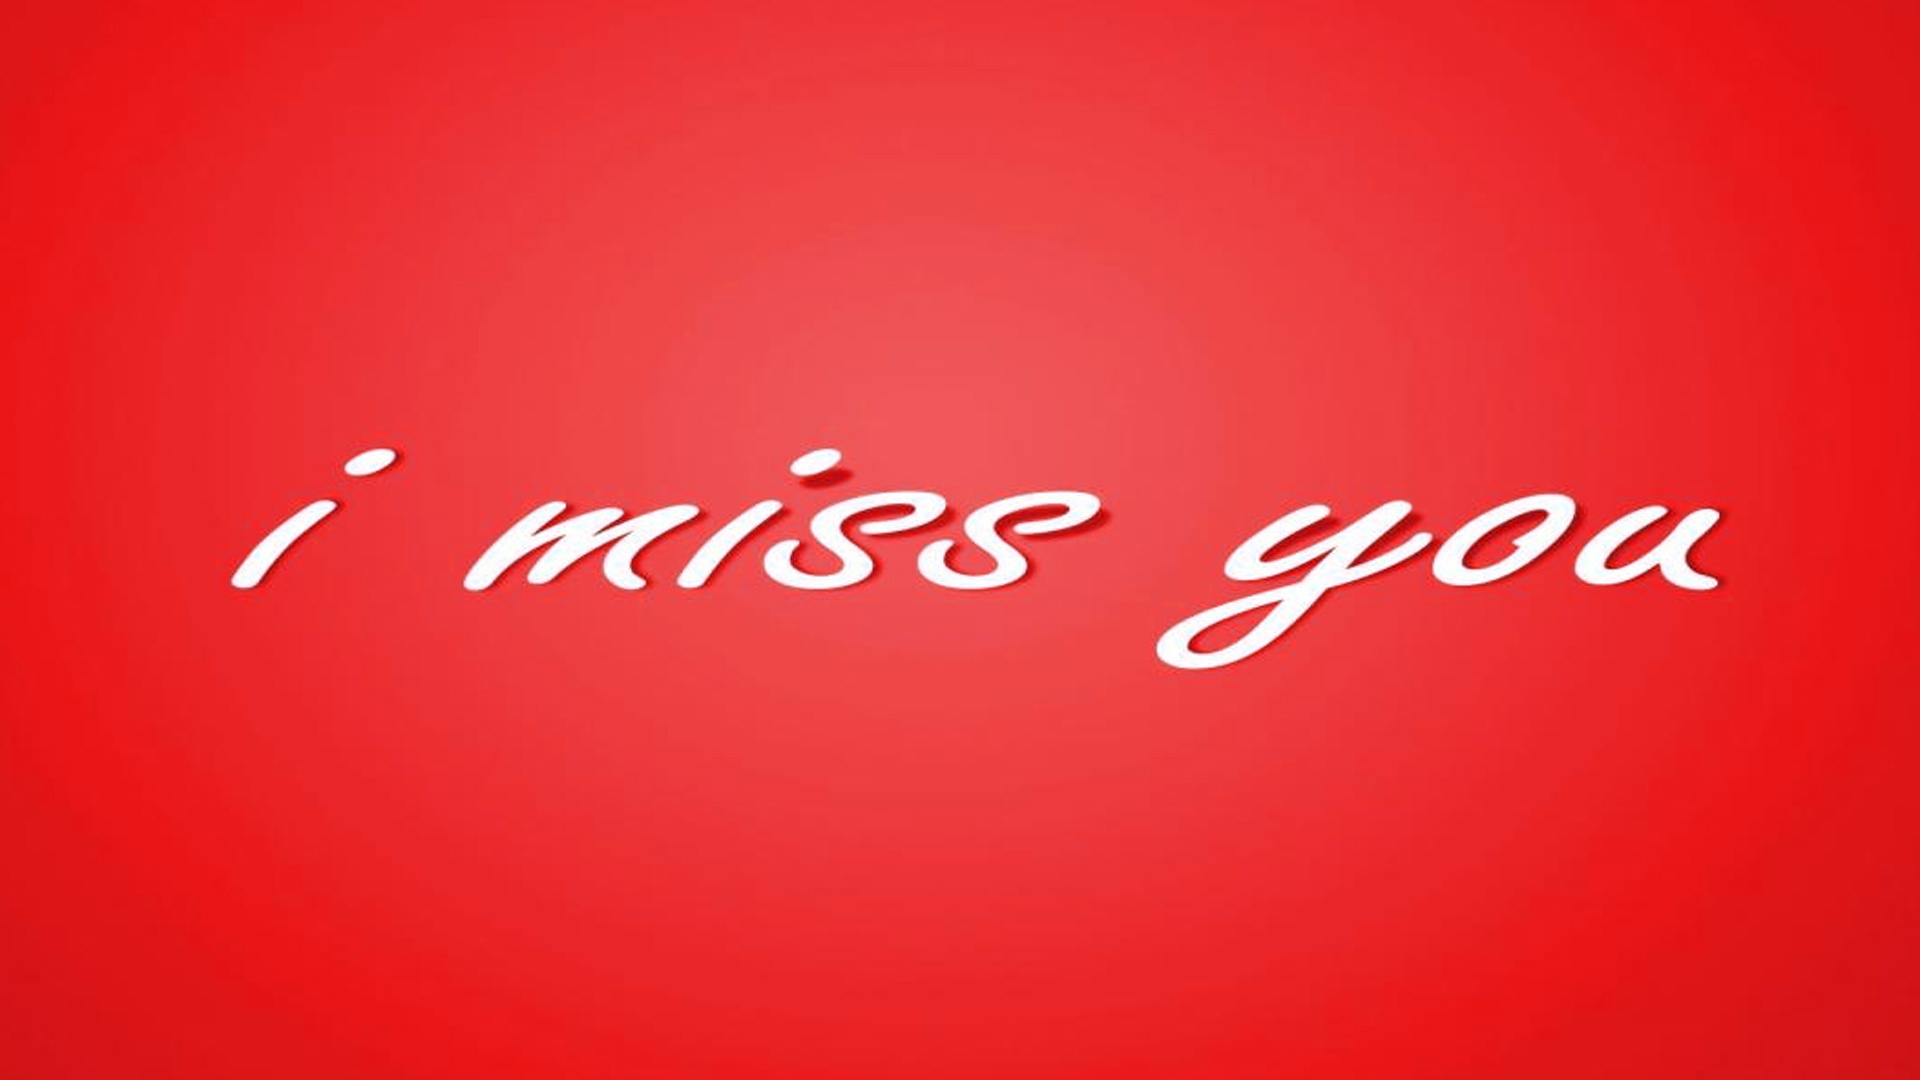 miss you hd wallpaper from the above resolutions if you don t find 1920x1080